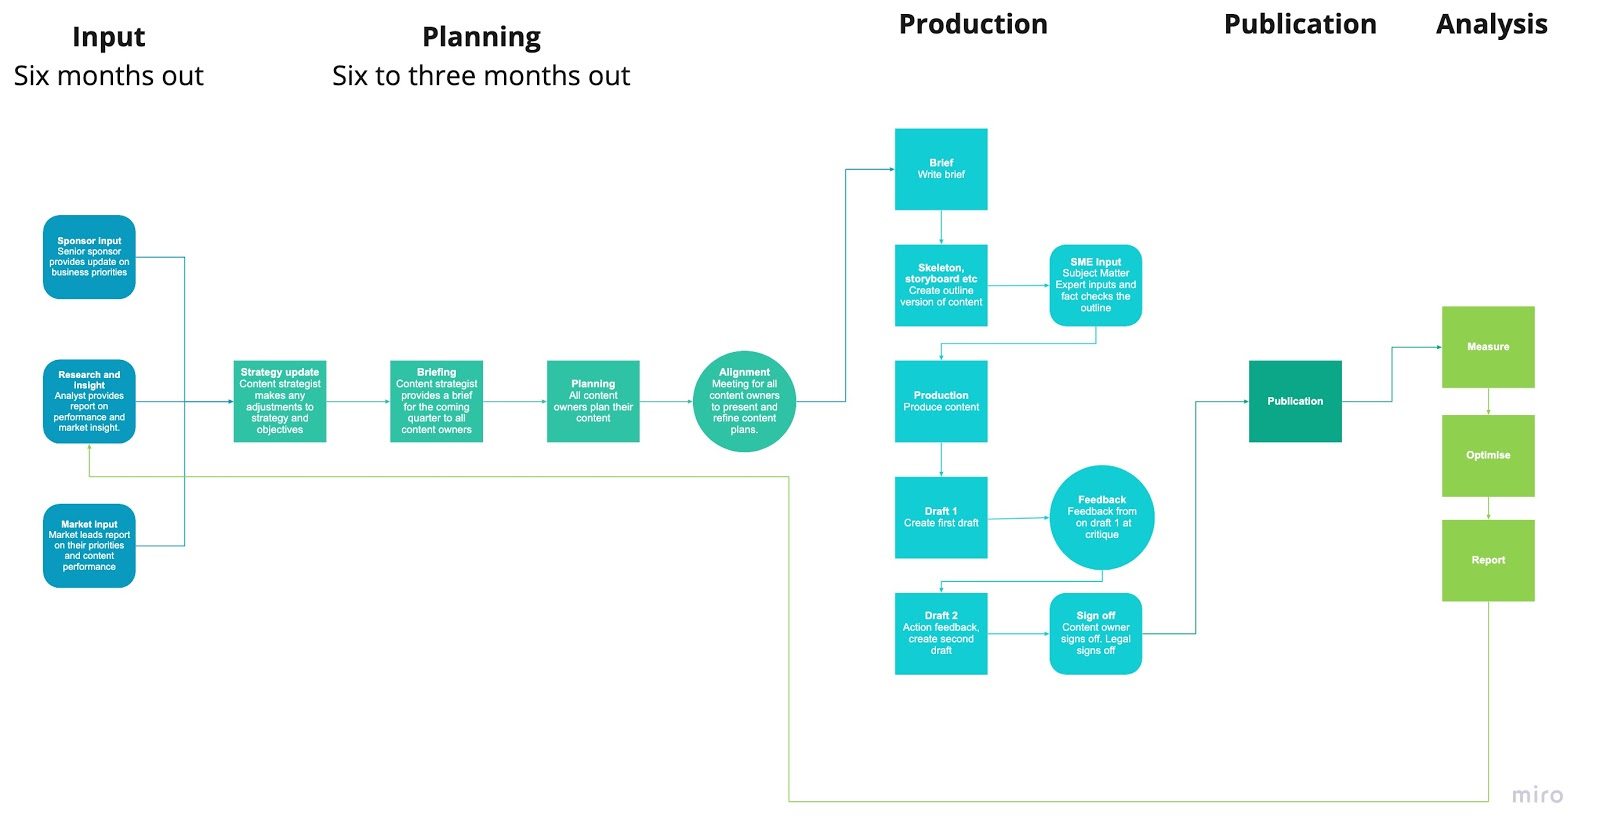 Diagram shows a workflow with input, planning, production, publication and analysis